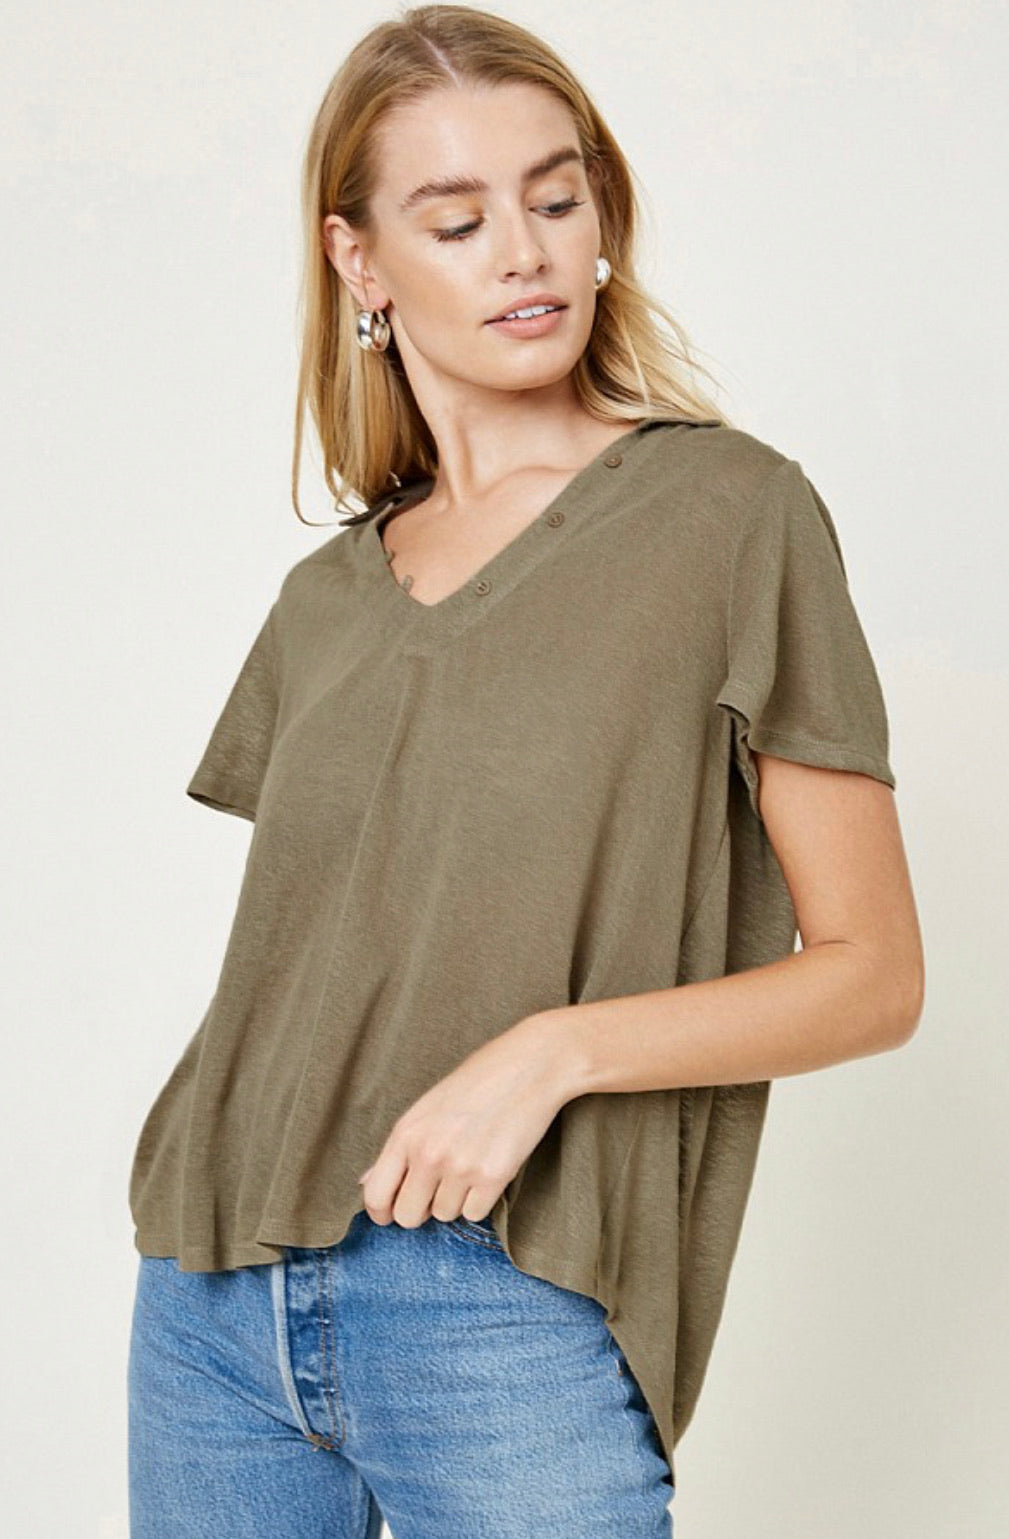 Collared V-Neck Top